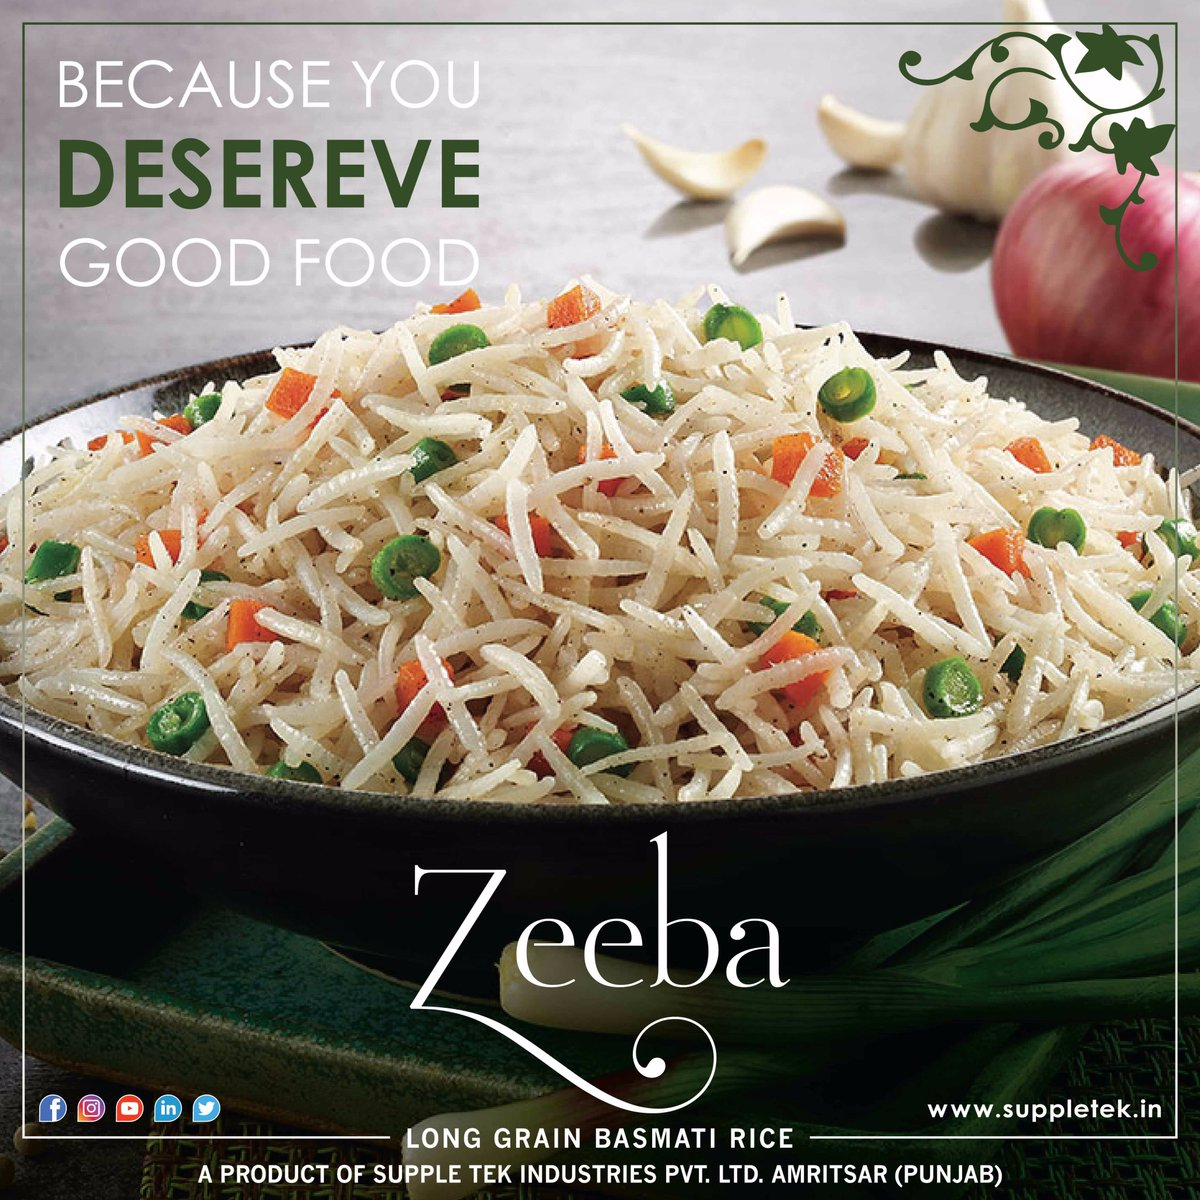 #Quality #Runs #Deep In Our #Grain!! Because you #deserve #Goodfood!! @RiceZeeba #suppletek  http:// bit.ly/2sH1C7i  &nbsp;    http:// bit.ly/2wEkveI  &nbsp;  <br>http://pic.twitter.com/yhm4YqhUF5